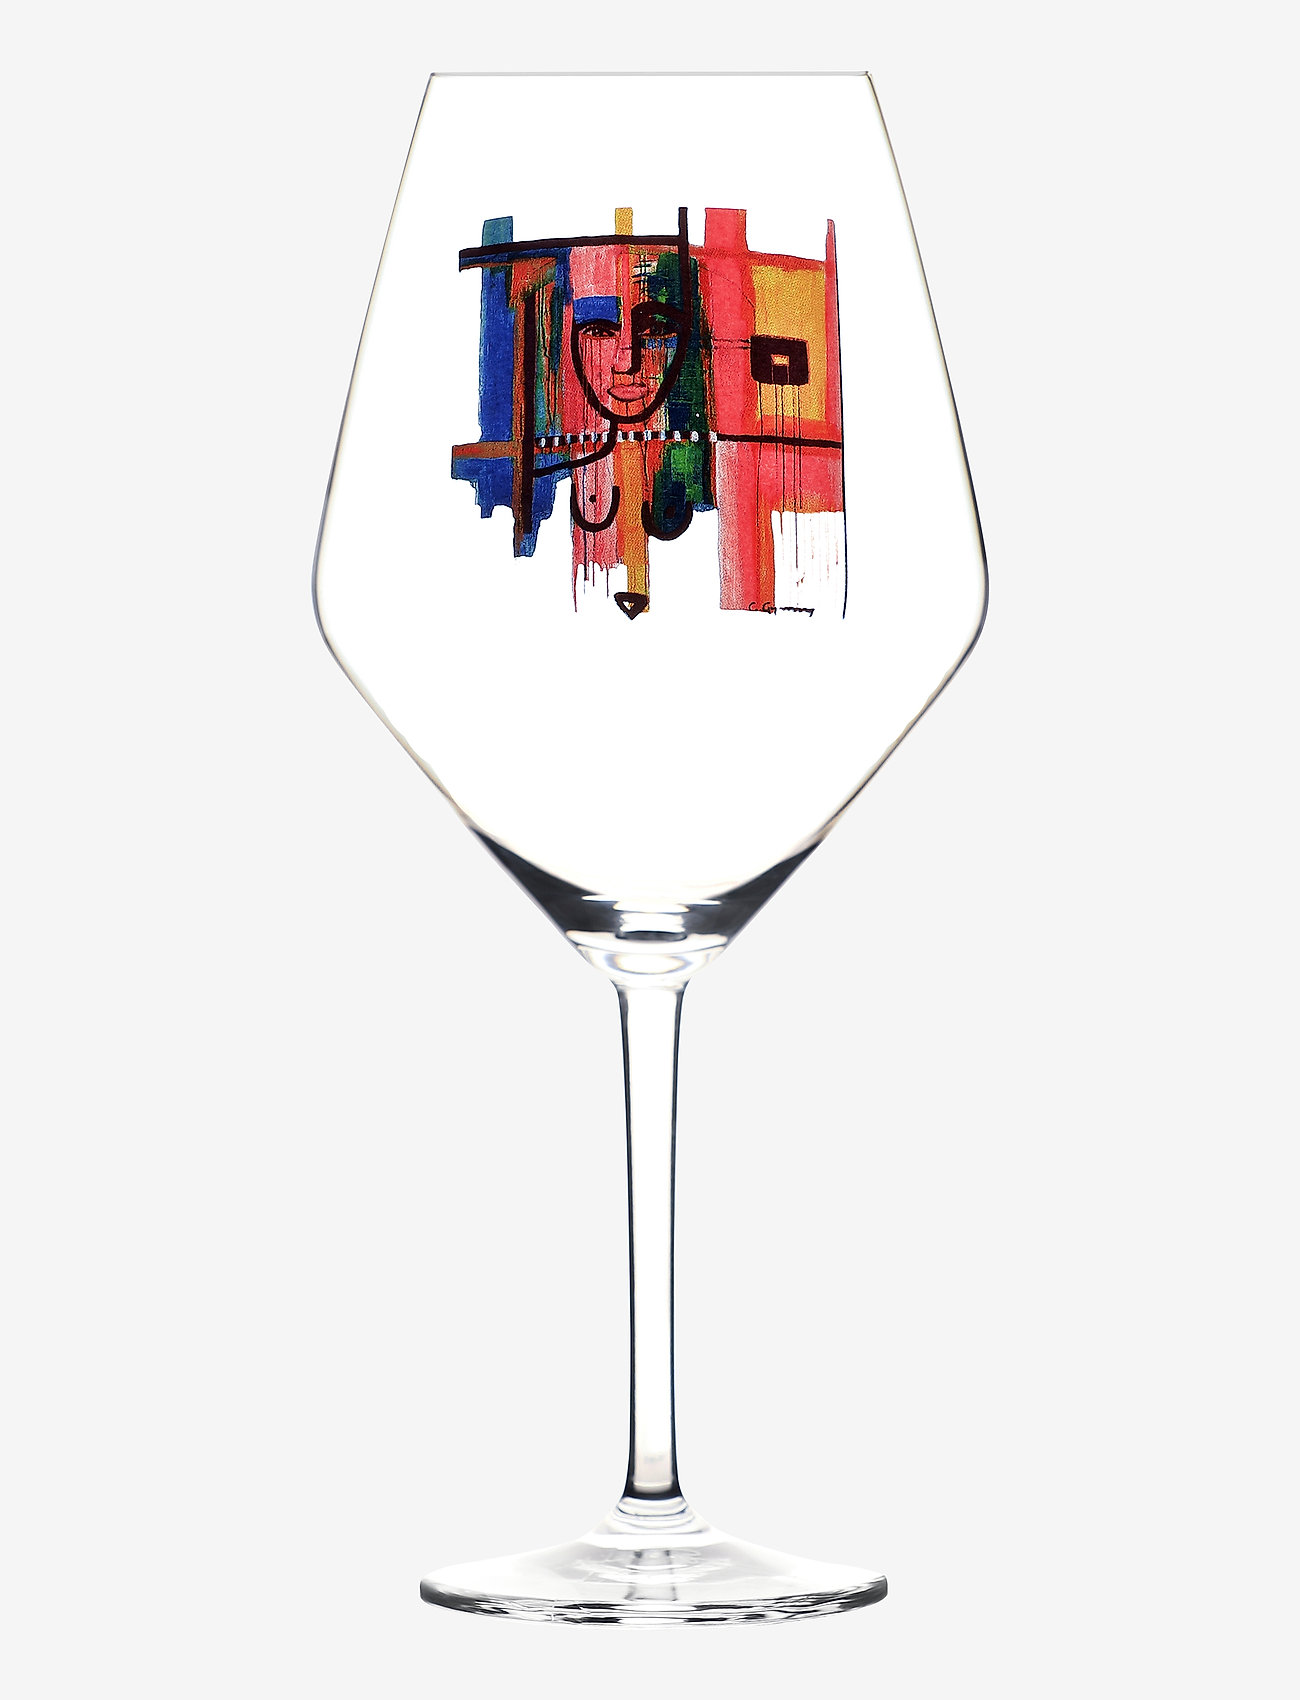 Carolina Gynning - In between Worlds - vinglass - clear with decal - 0